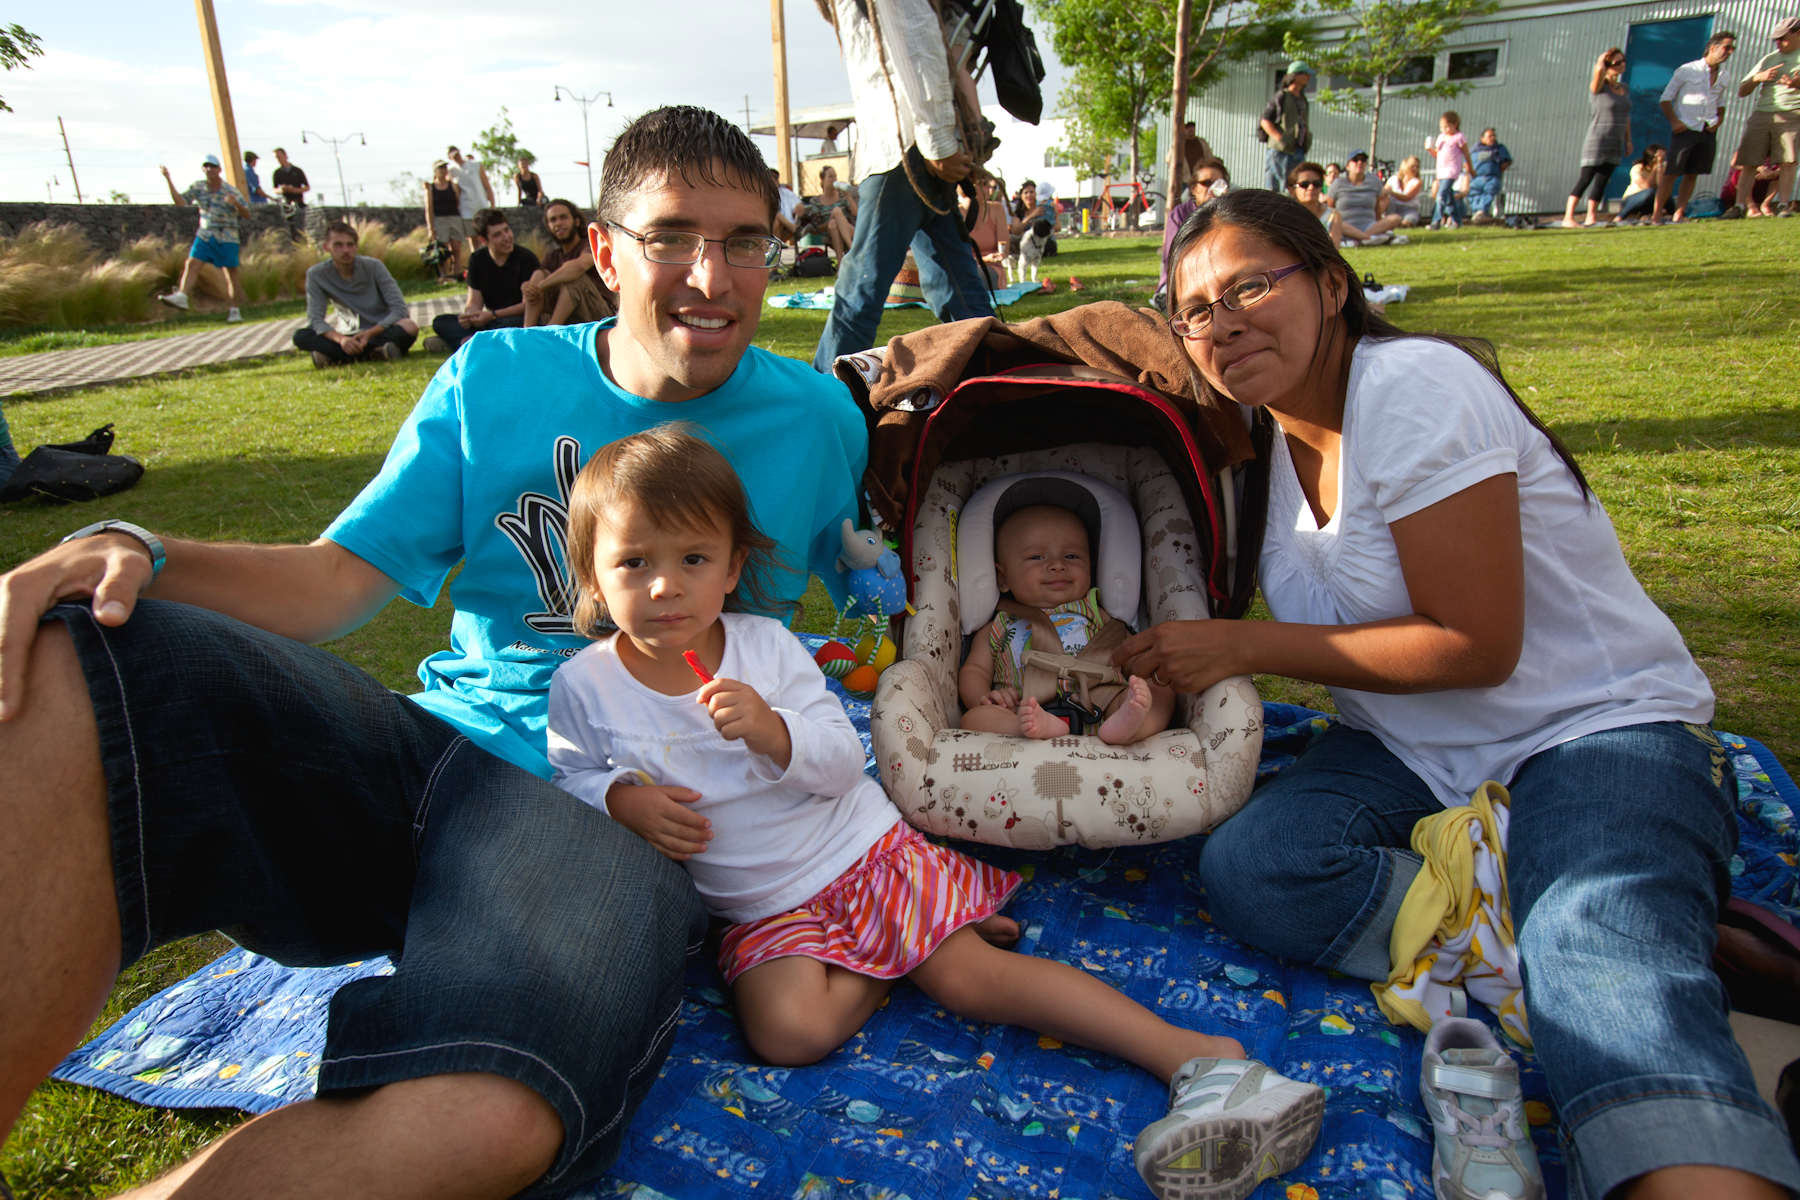 REEL FATHERS-Father's Day Fiesta: Family relaxes before movie on performance green